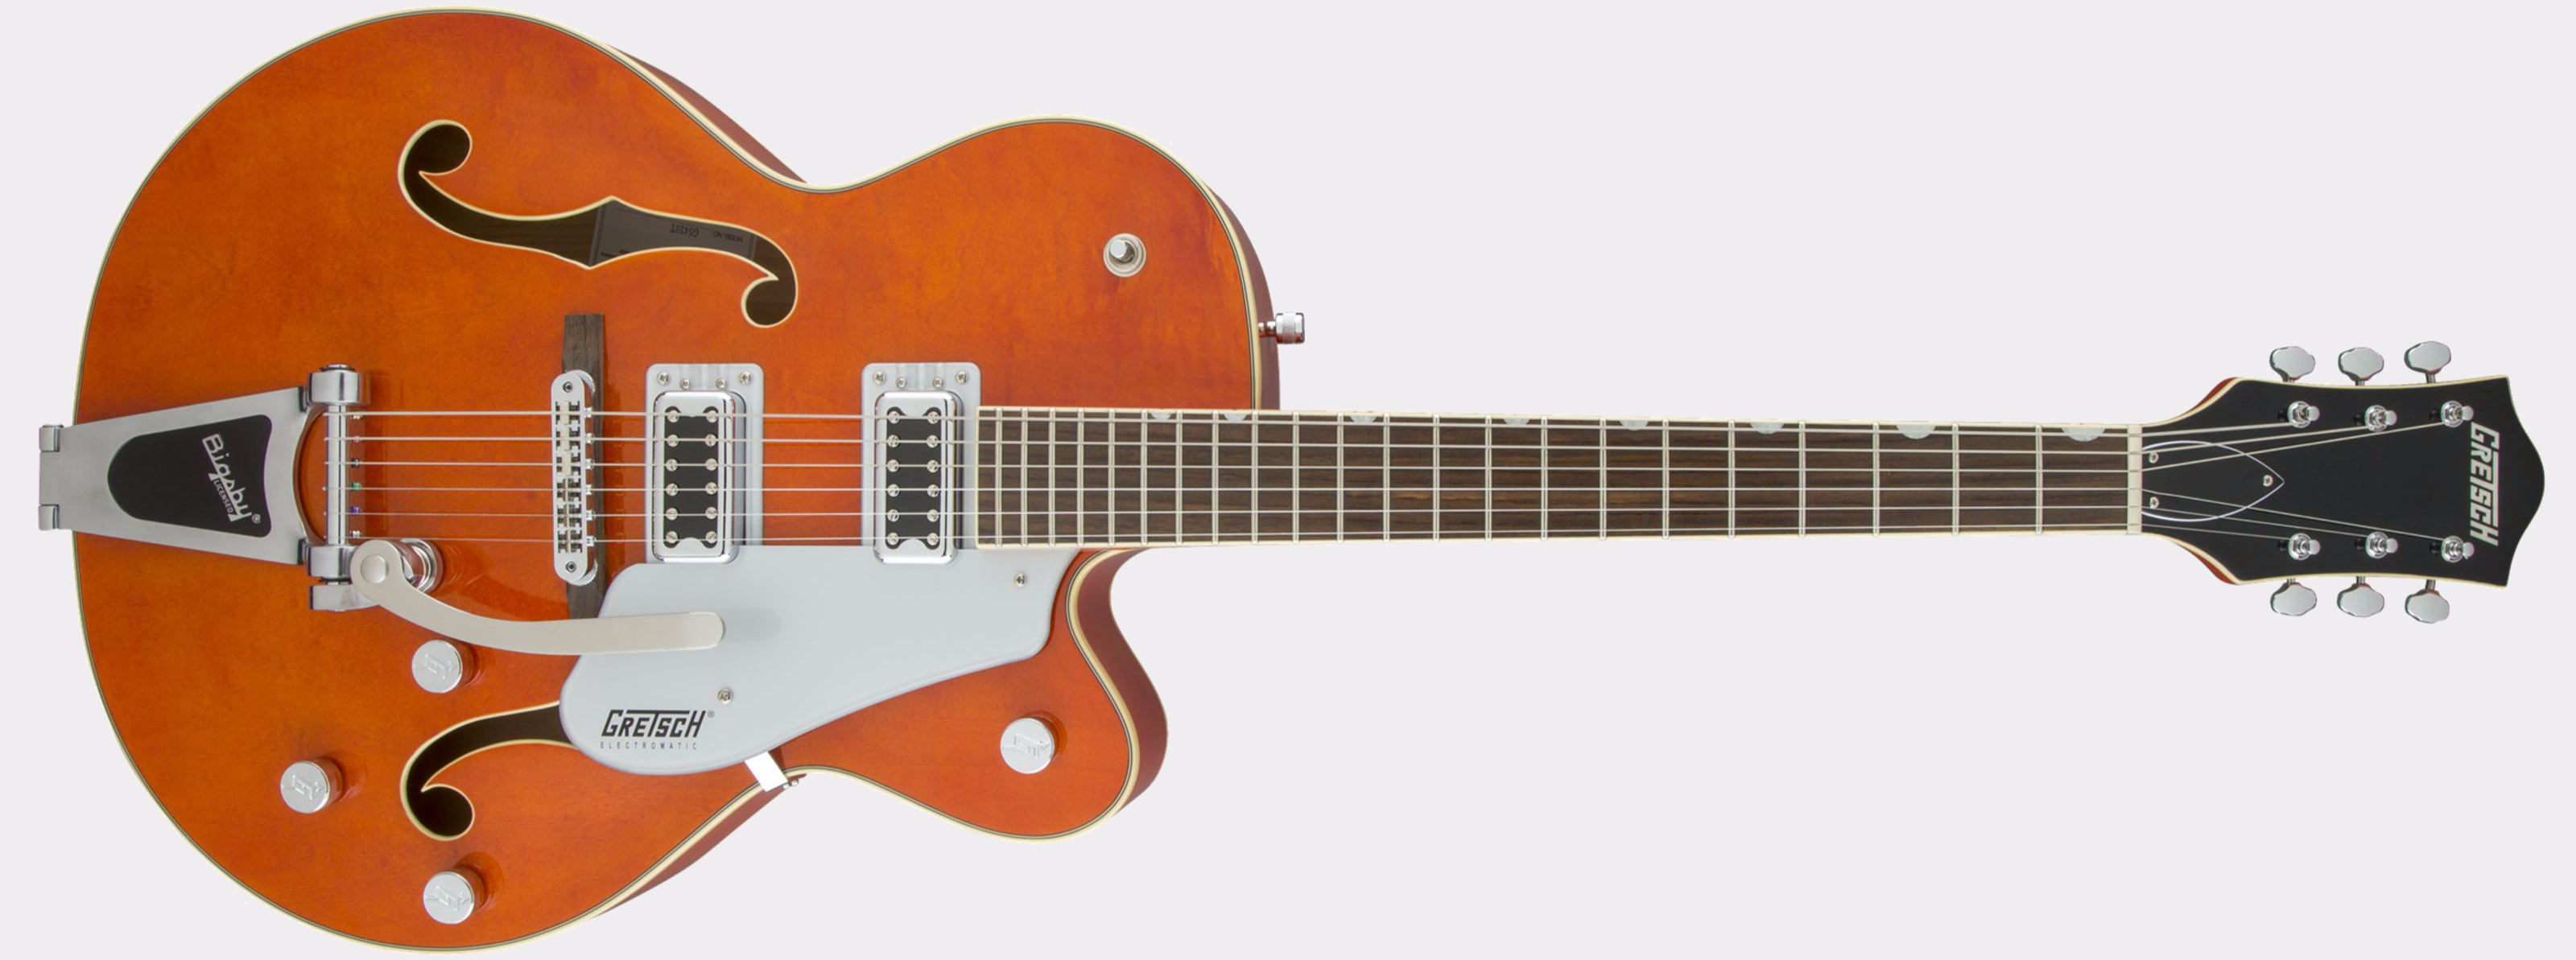 Gretsch G5420T Electromatic Orange Stain Front